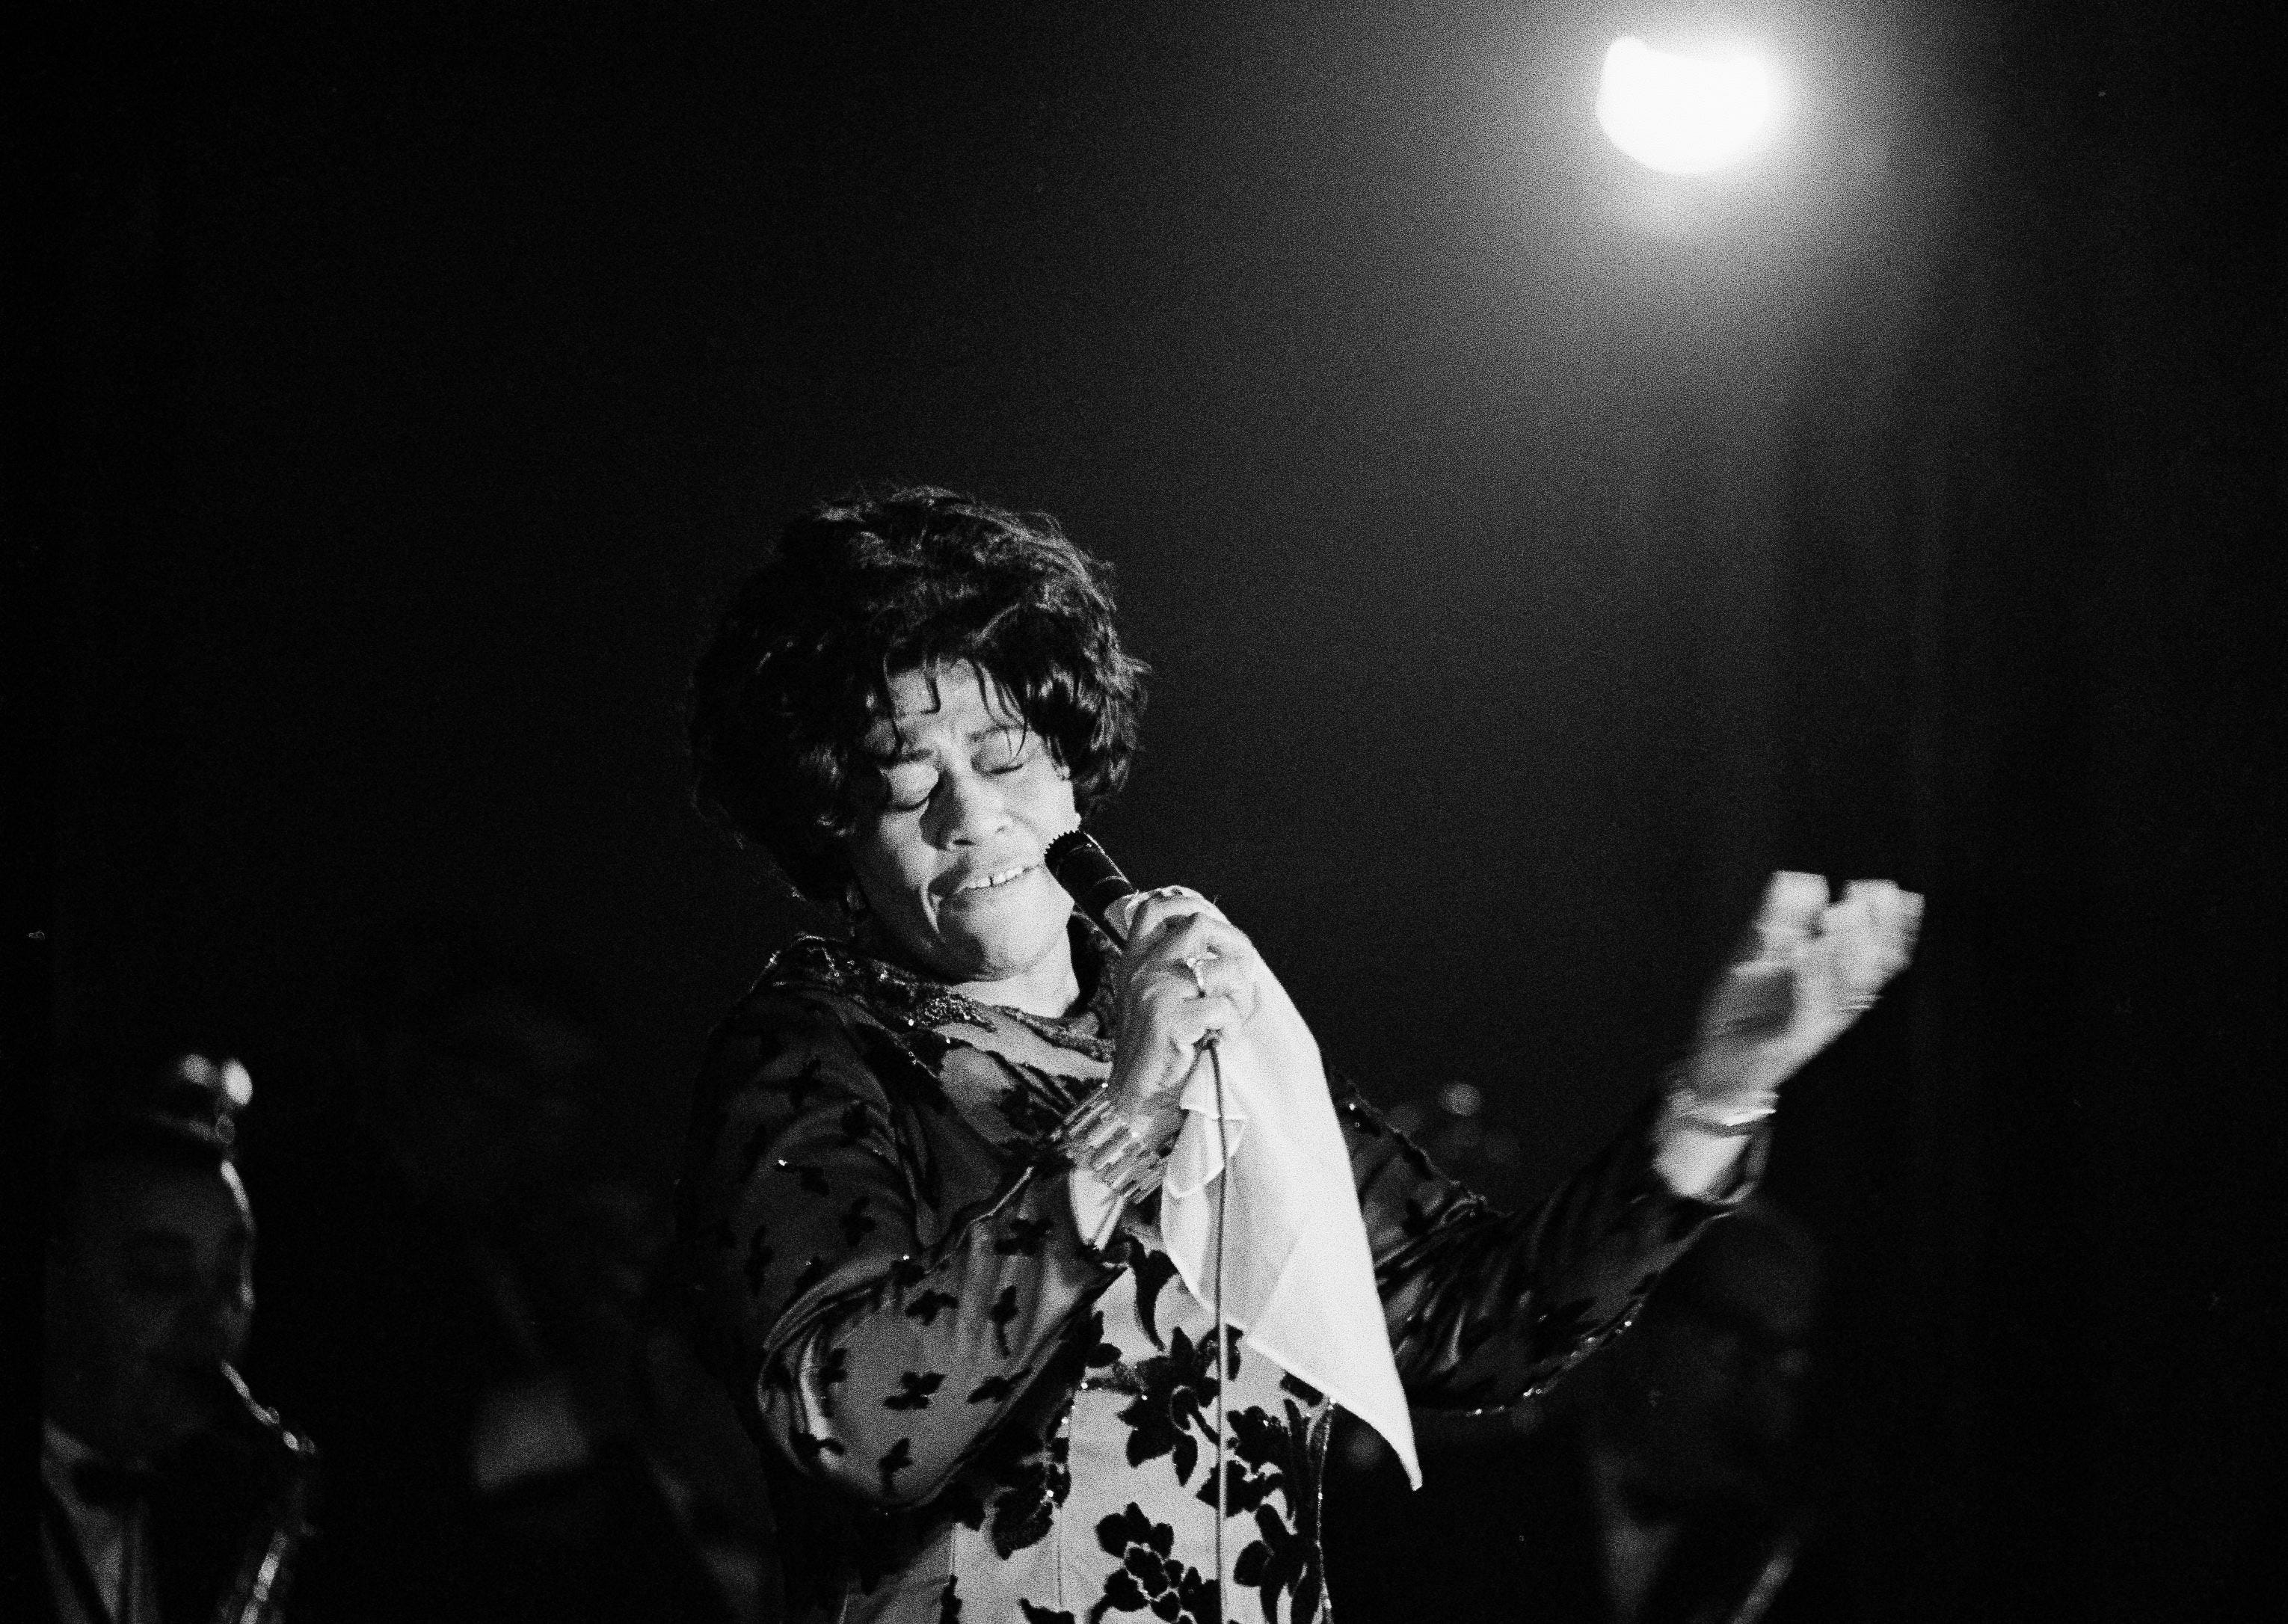 Famed jazz singer Ella Fitzgerald performs at the Empire Room at the Waldorf Astoria Hotel in New York, March 30, 1971.